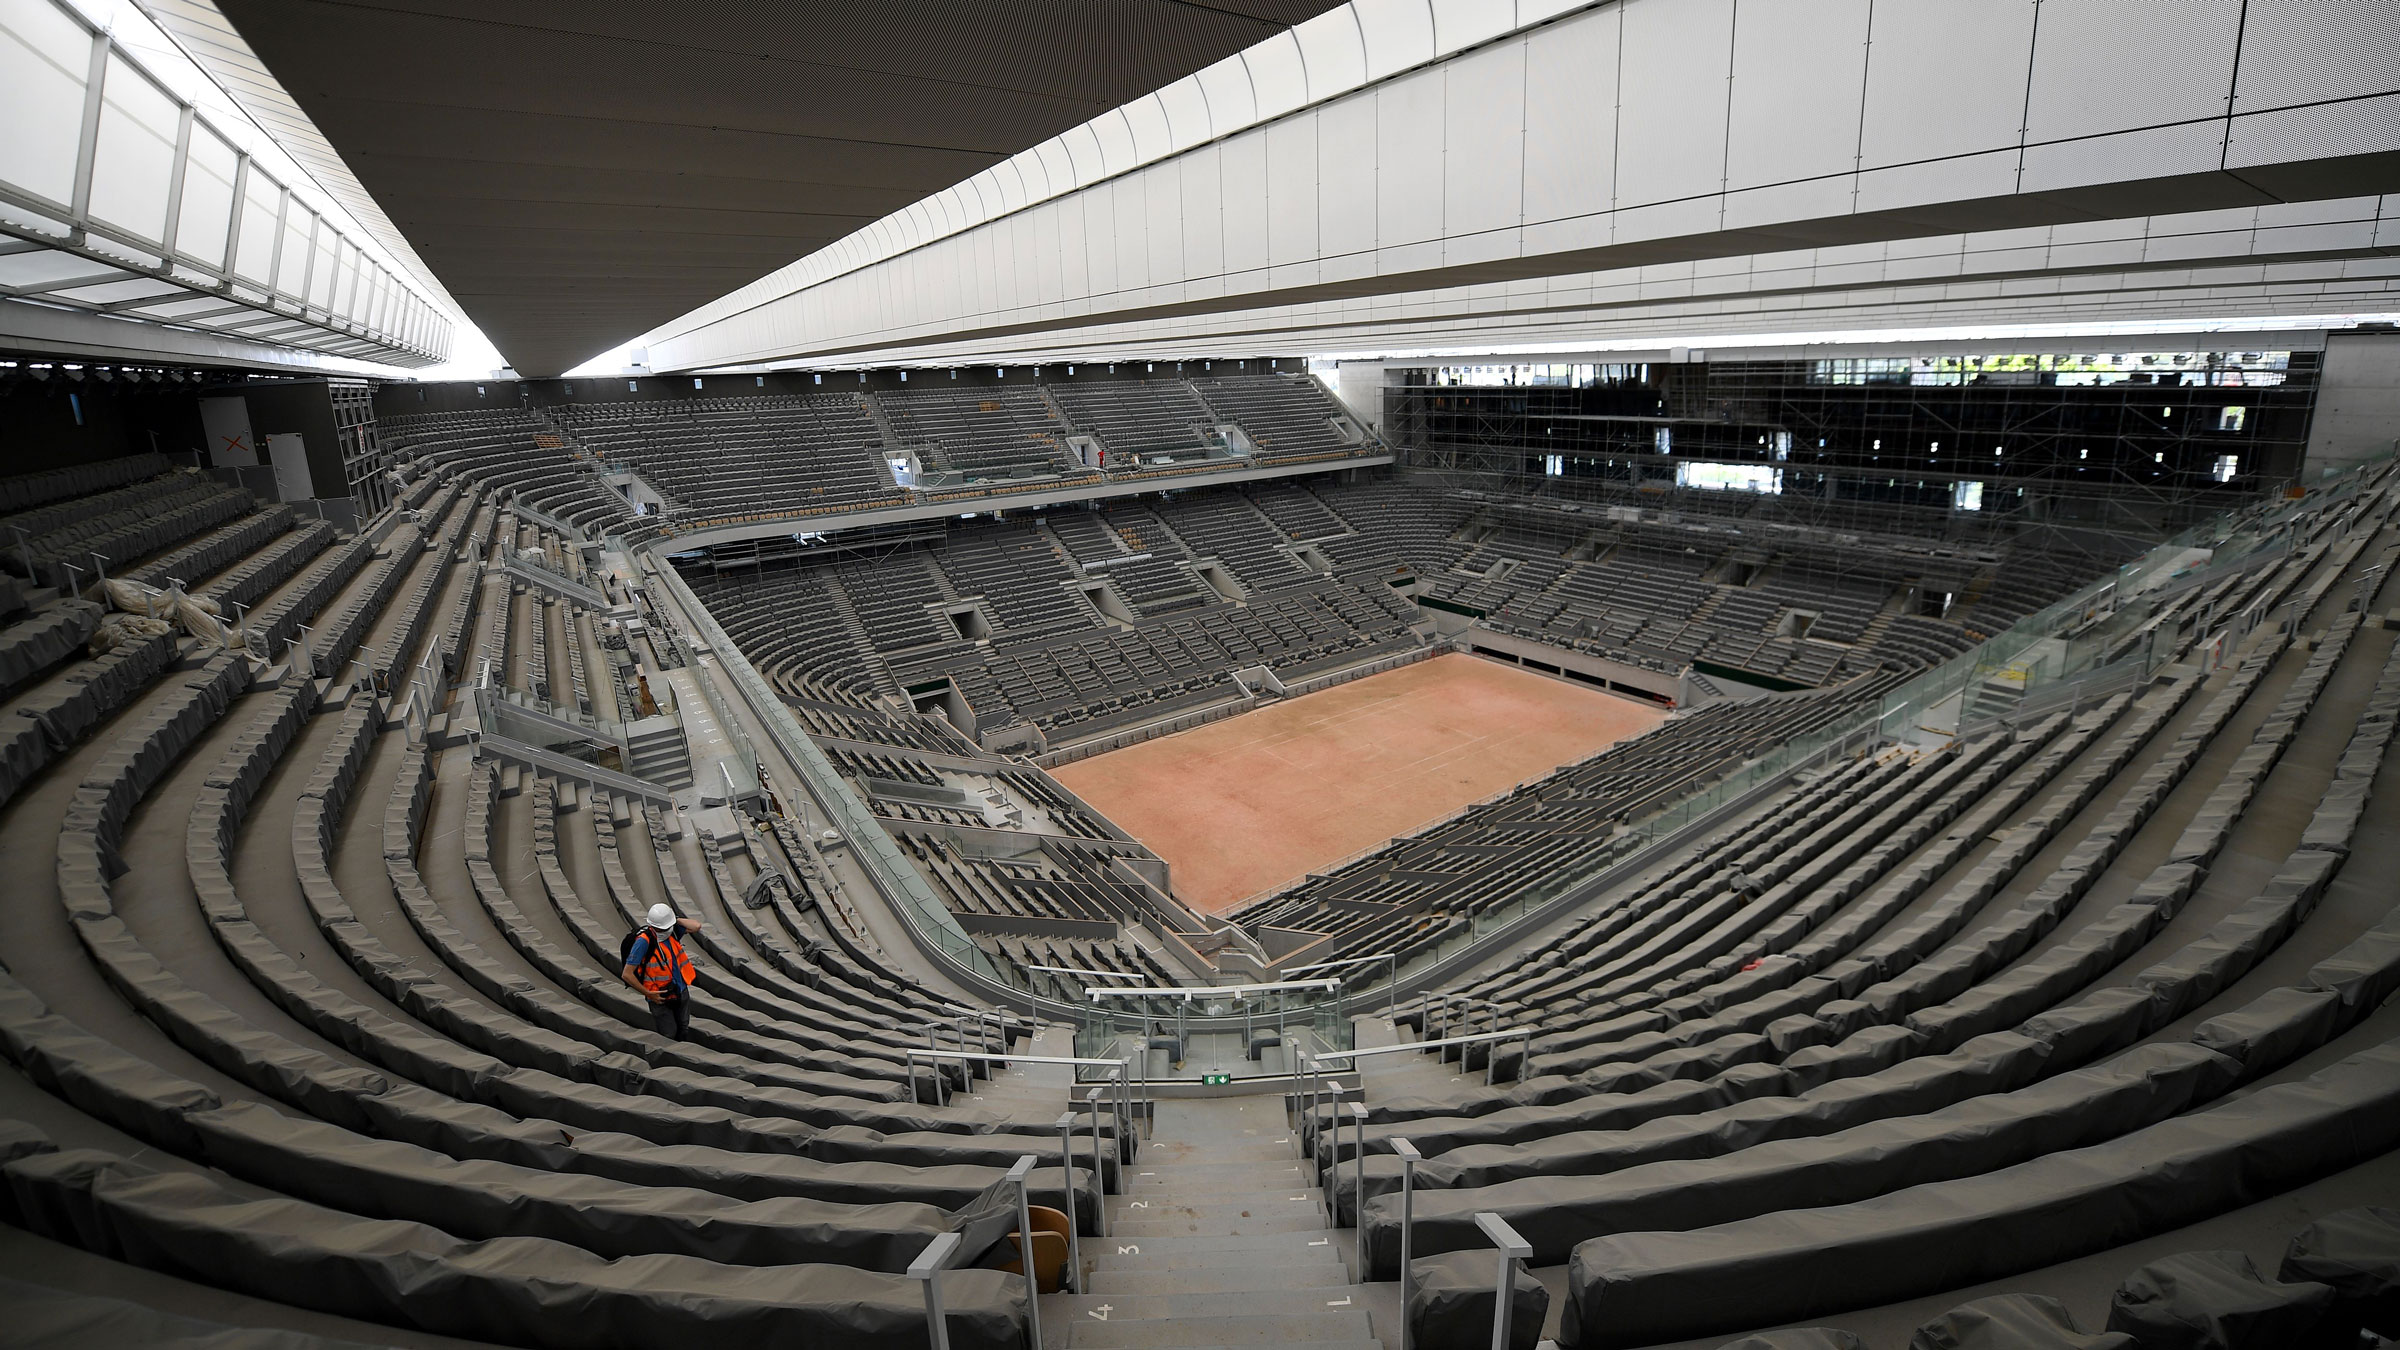 Court Philippe Chatrier, seen here in May, just got a new retractable roof ahead of the French Open.